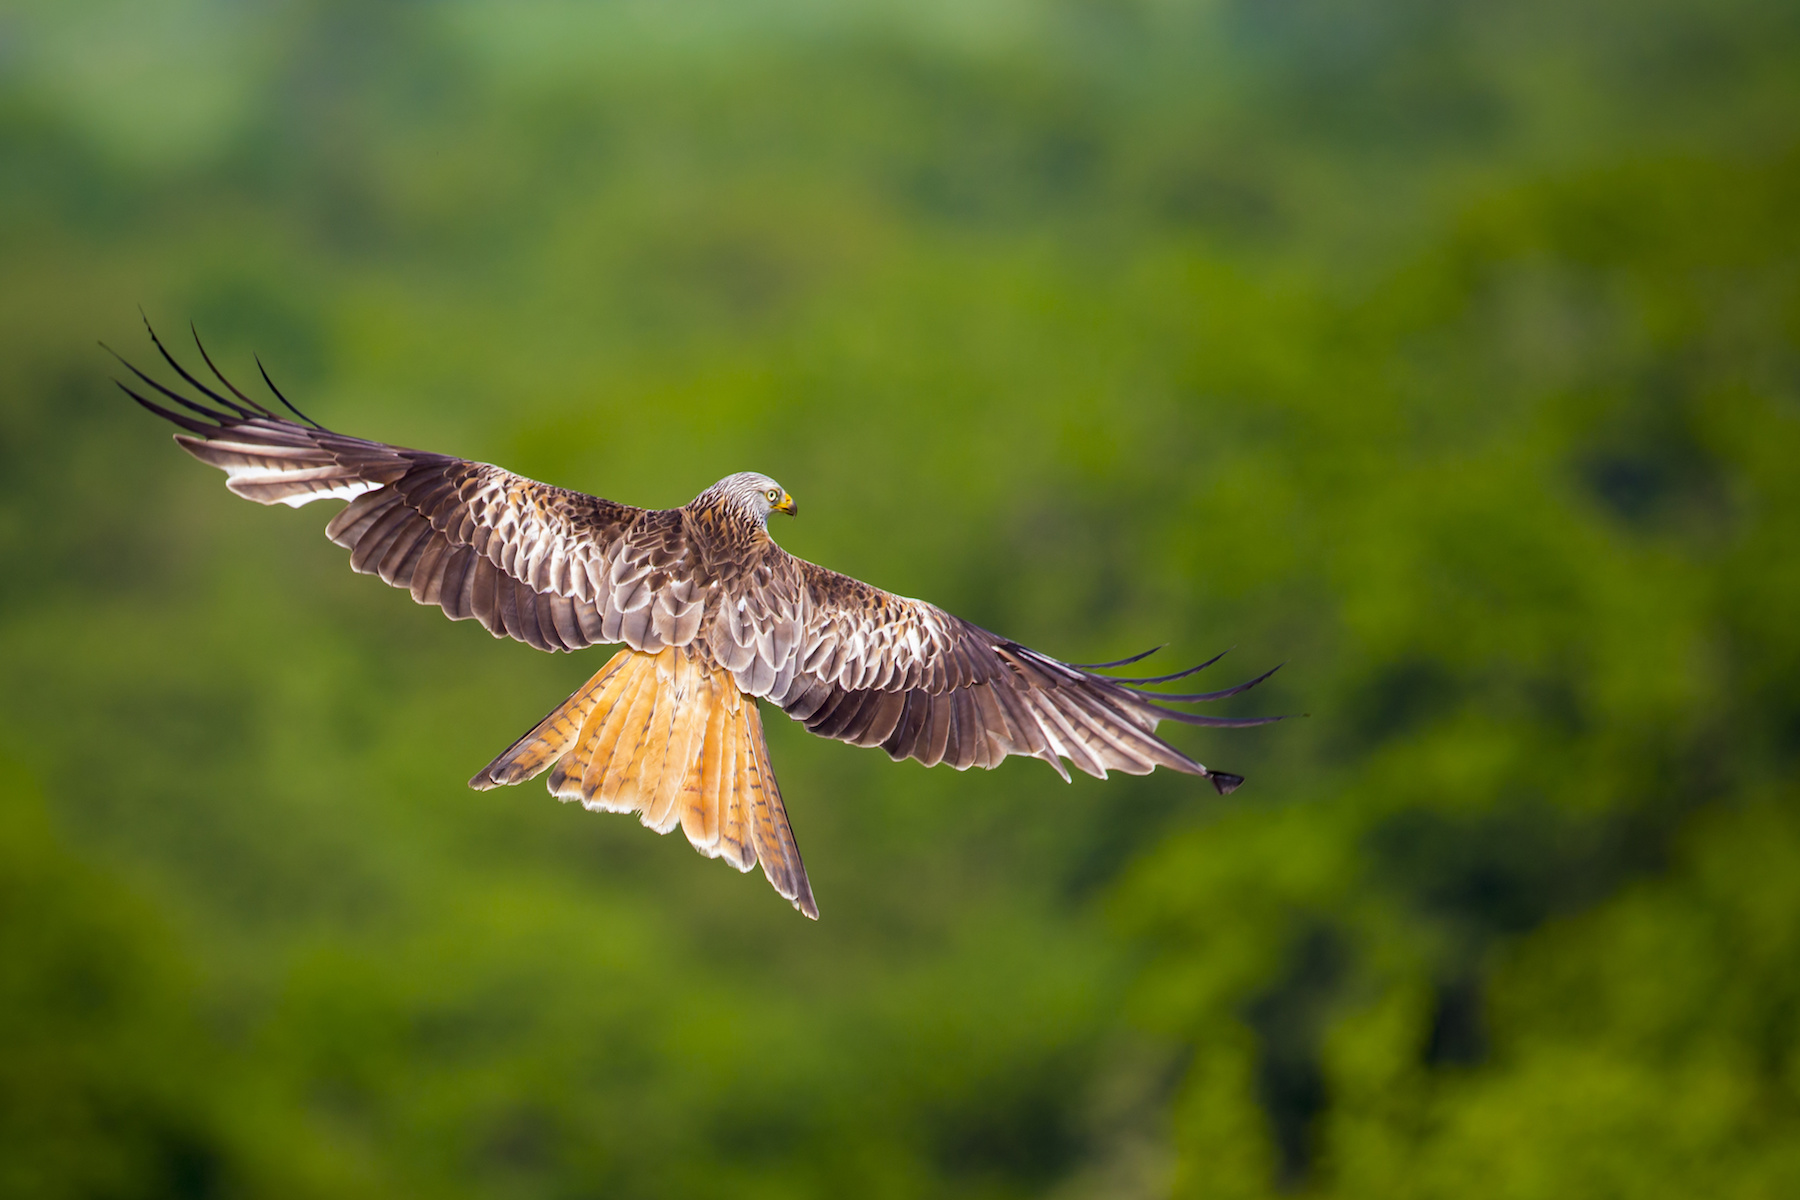 Dolcoed Red Kite Naturist Site Carmarthenshire West Wales